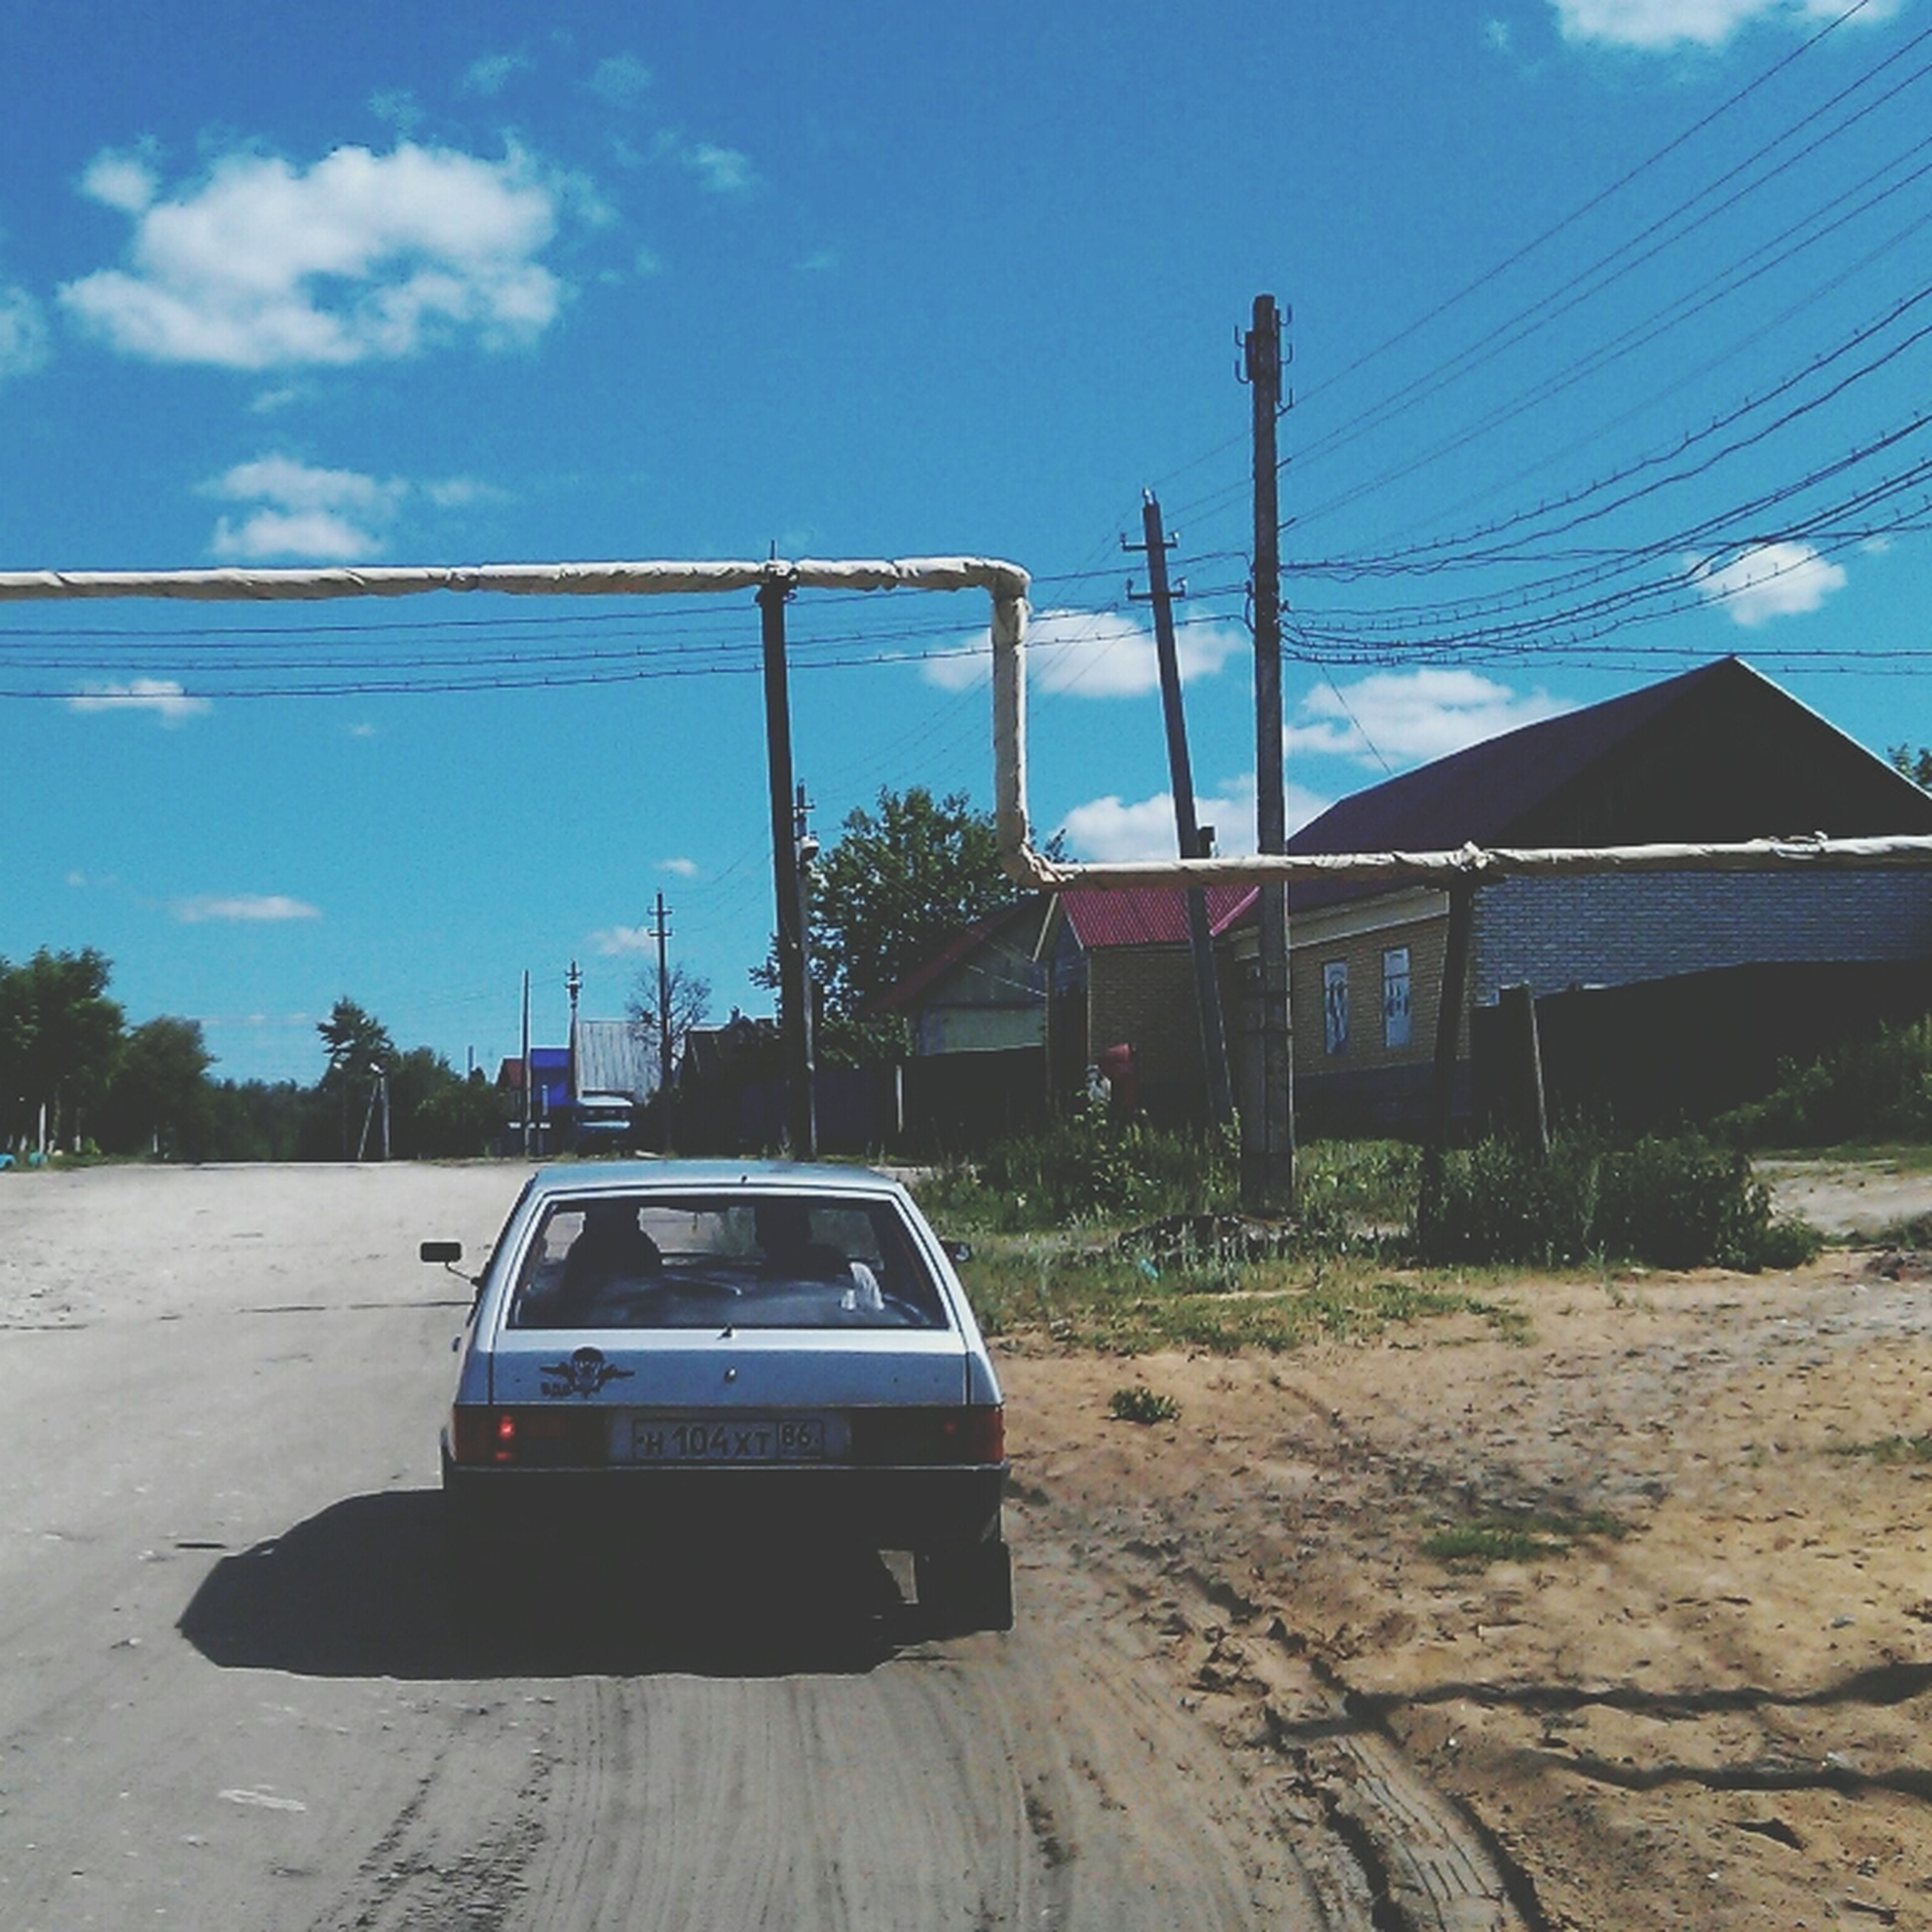 transportation, power line, sky, electricity pylon, mode of transport, blue, cable, sunlight, electricity, connection, power supply, built structure, day, outdoors, land vehicle, tree, cloud, car, no people, architecture